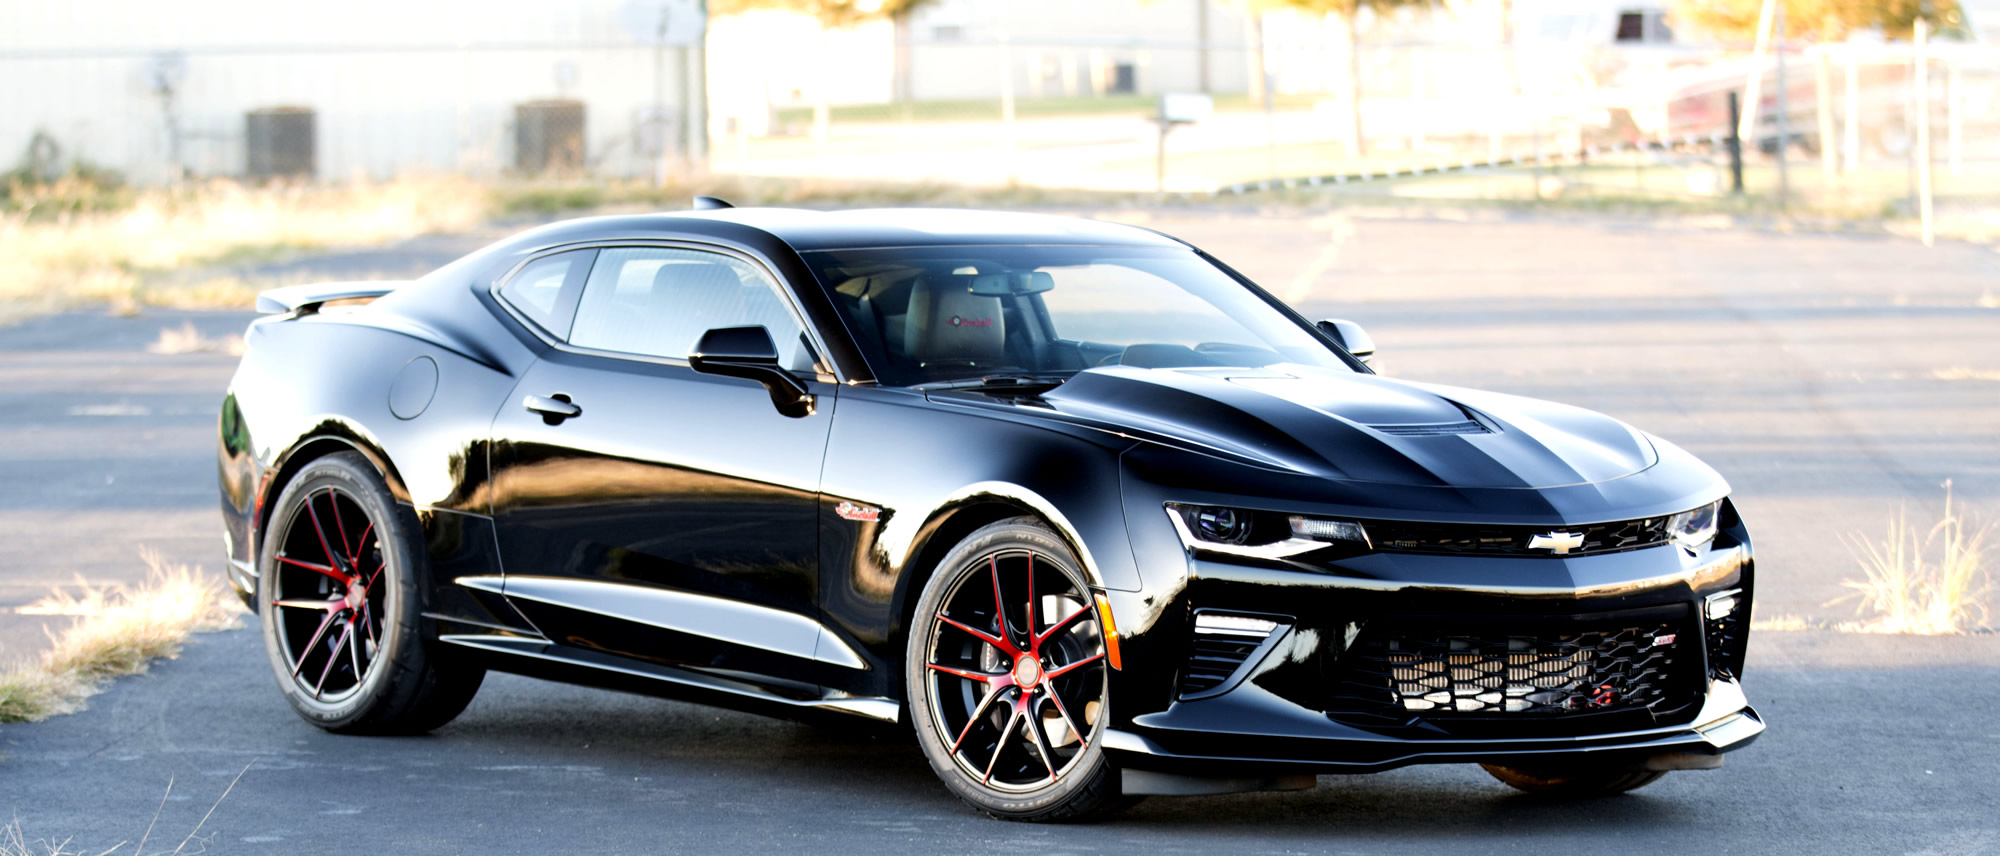 Fireball_Camaro_900_Black